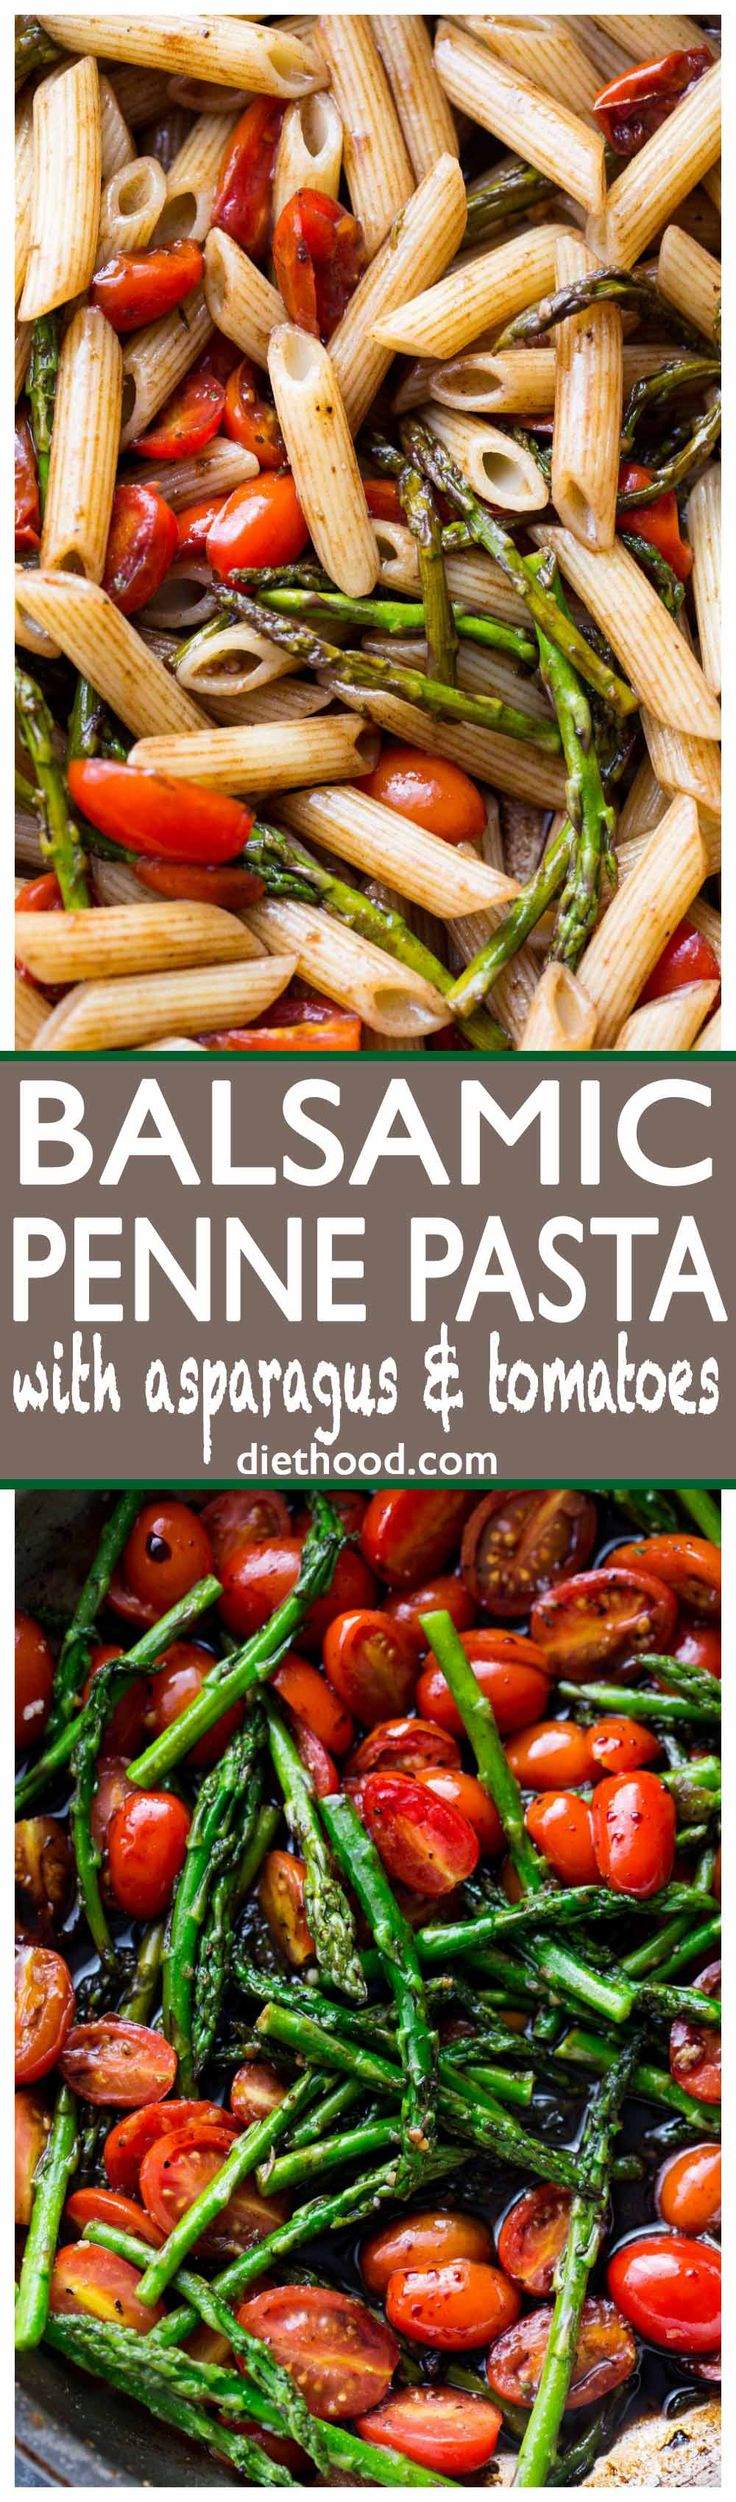 Balsamic Penne Pasta with Asparagus and Tomatoes - Quick, easy, and delicious pasta dish tossed with sweet tomatoes, asparagus, and an amazing balsamic sauce.